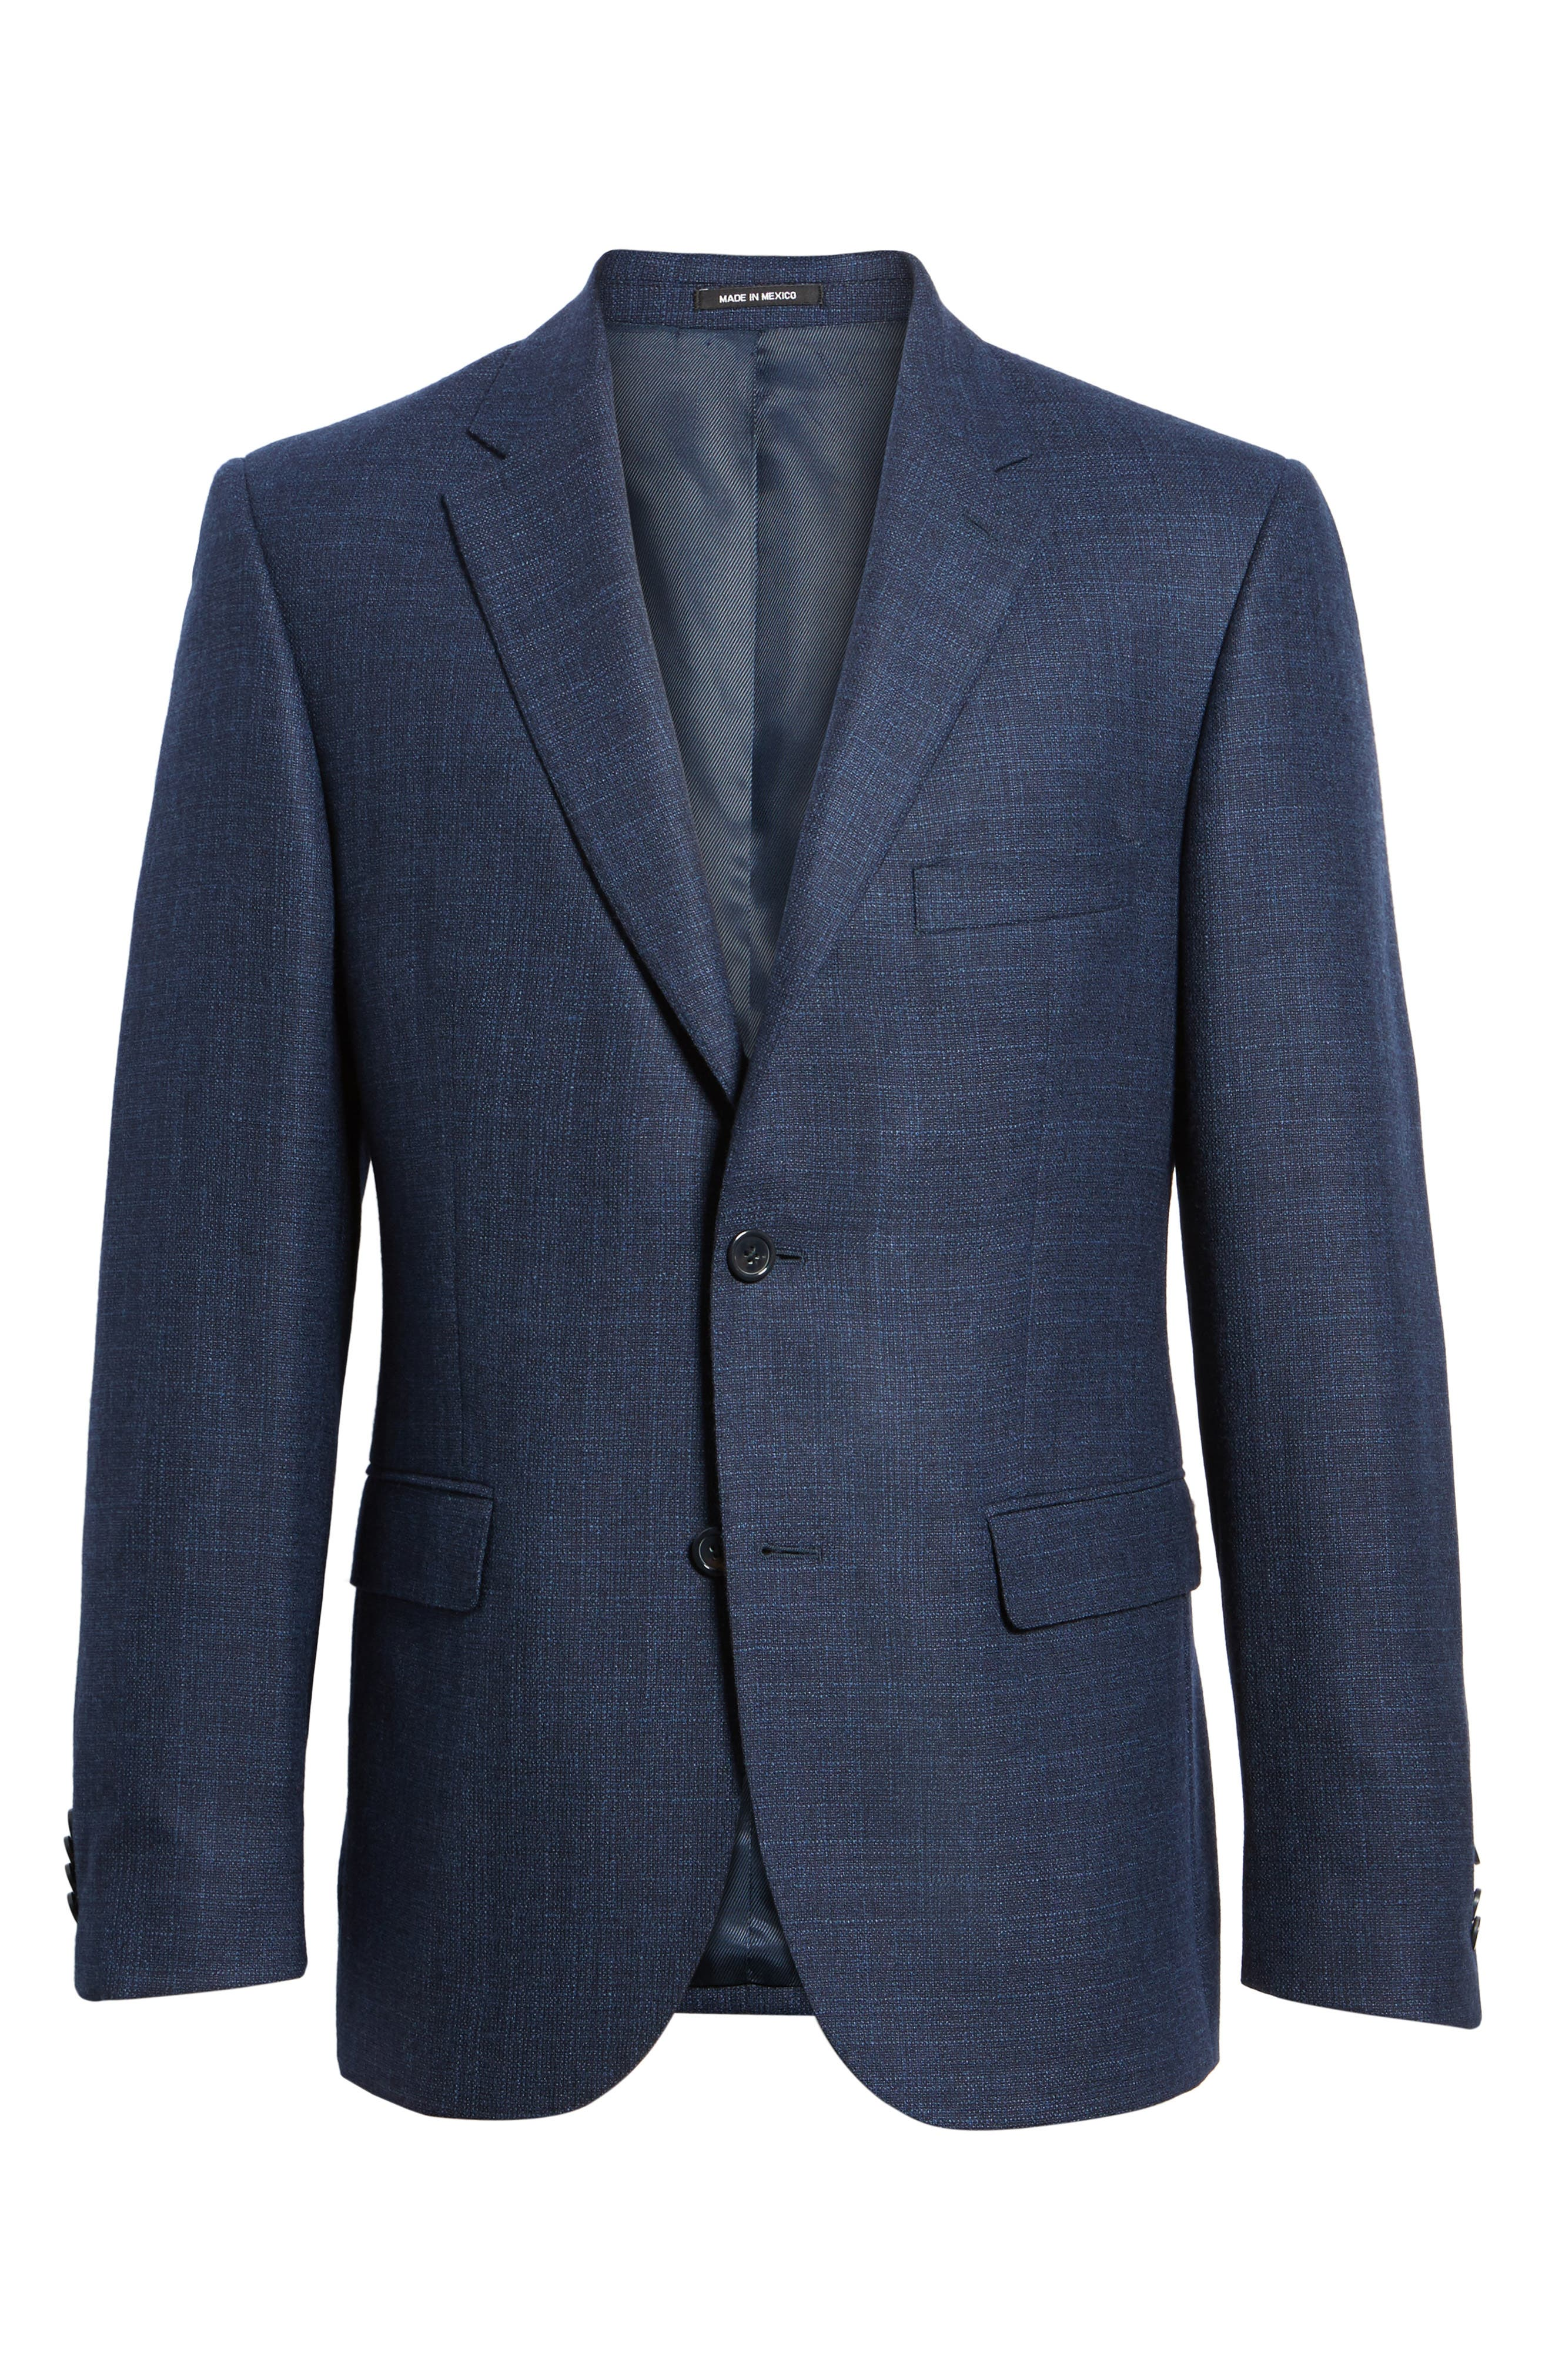 Classic Fit Wool Blazer,                             Alternate thumbnail 5, color,                             422